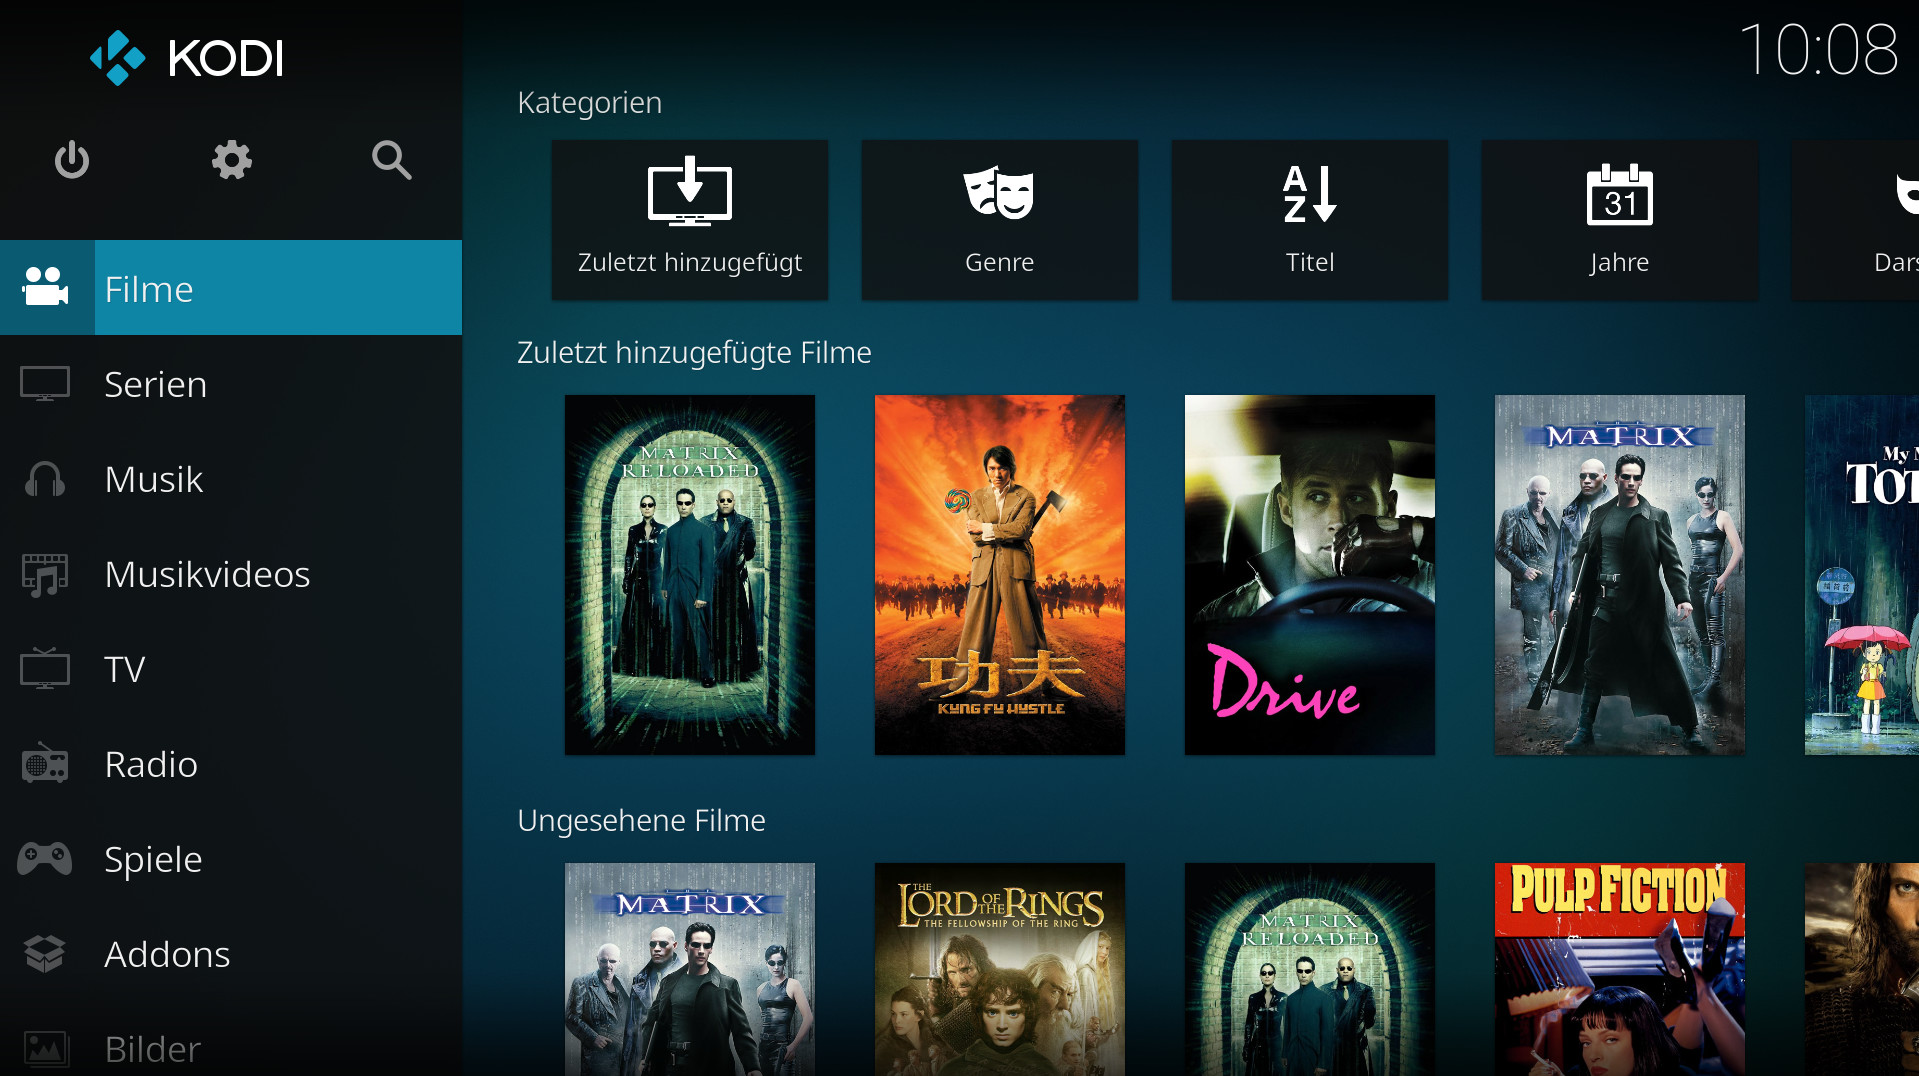 Screenshot 1 - Kodi